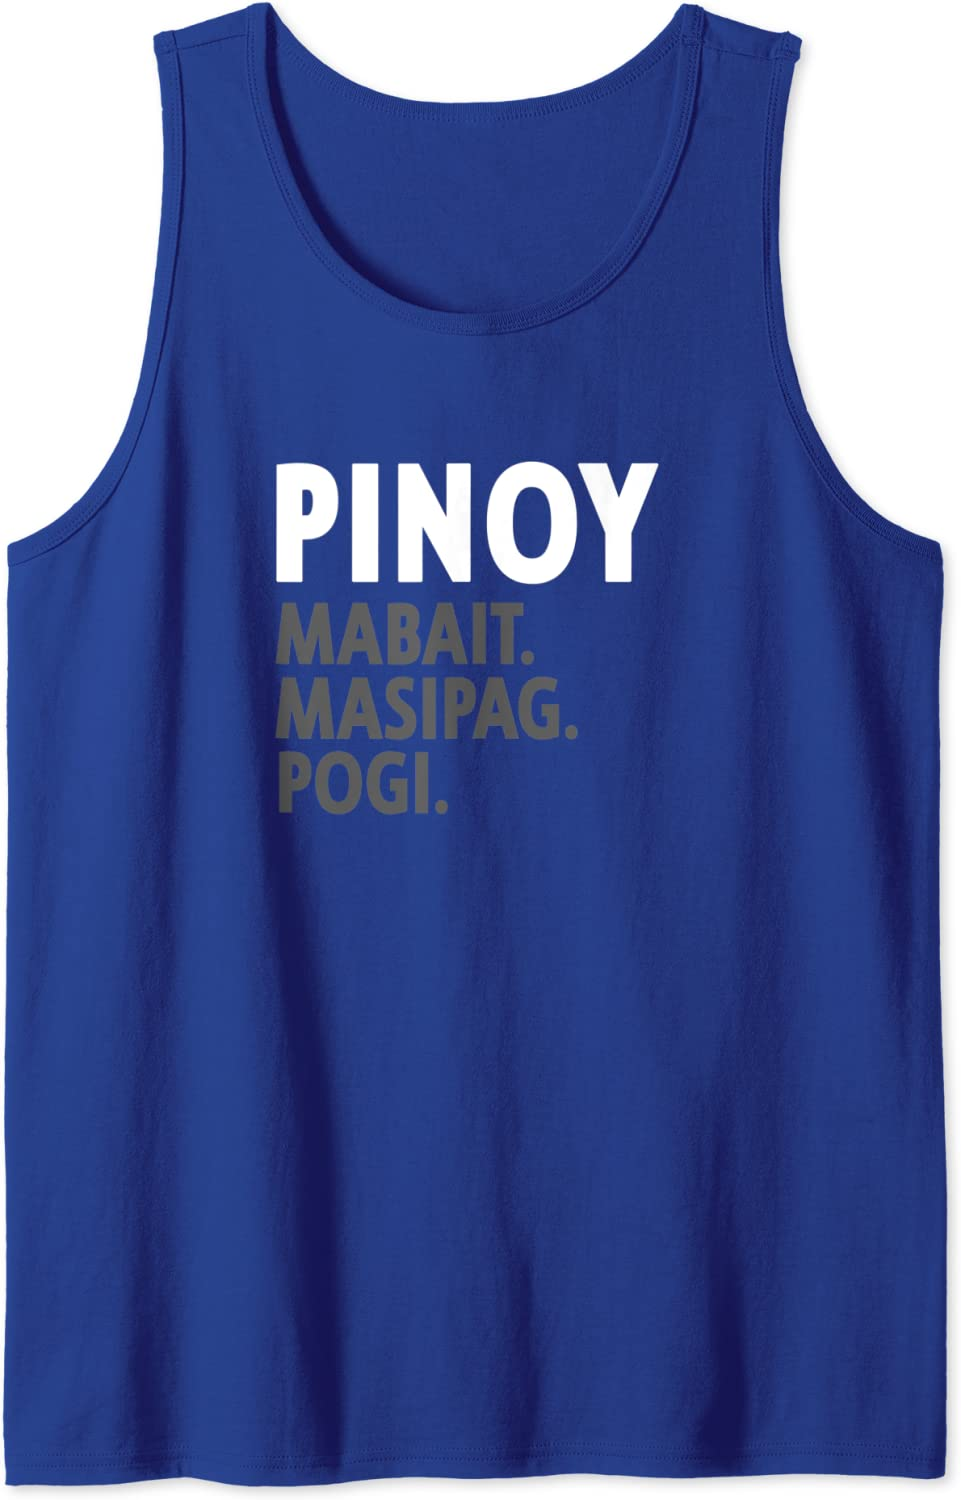 To pinoy male male Urban Dictionary: